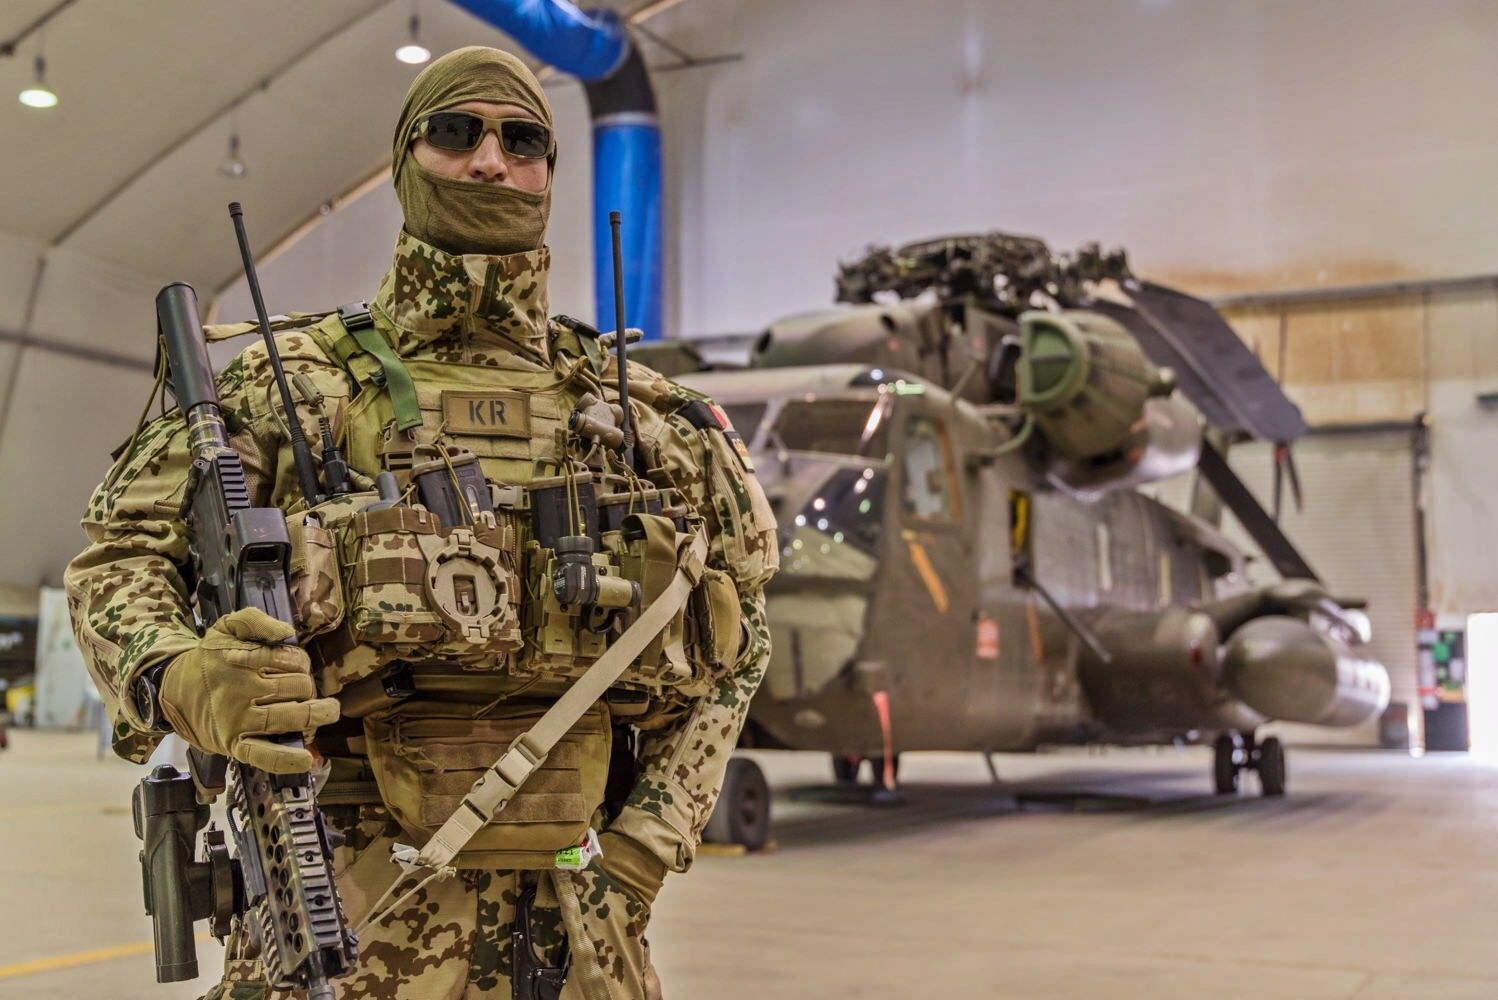 A German Air Force Pararescueman (Kampfretter) pictured in